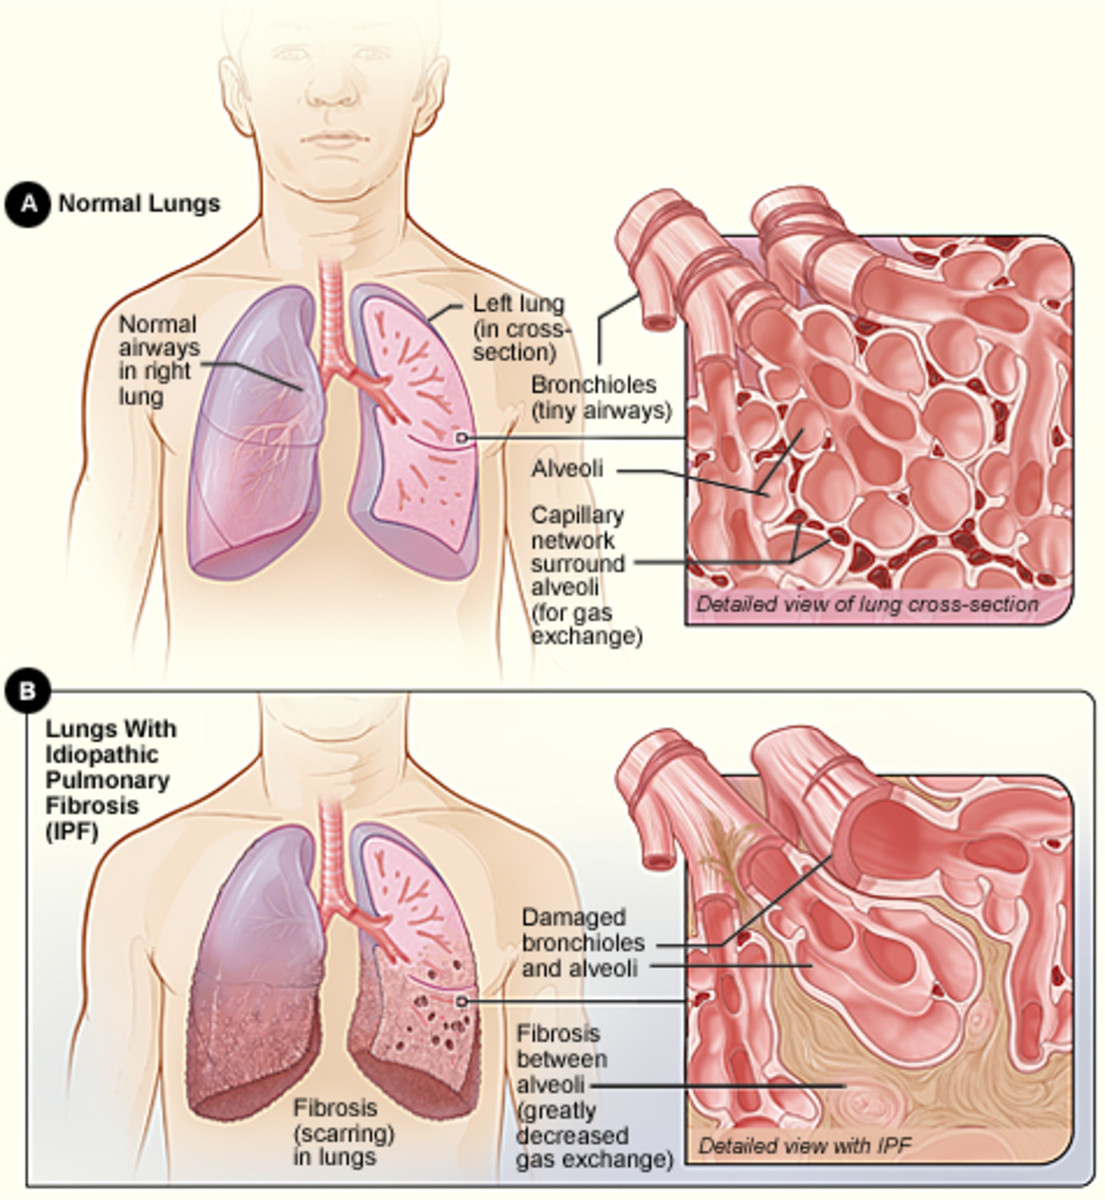 fibrosis-definition-causes-and-treatment